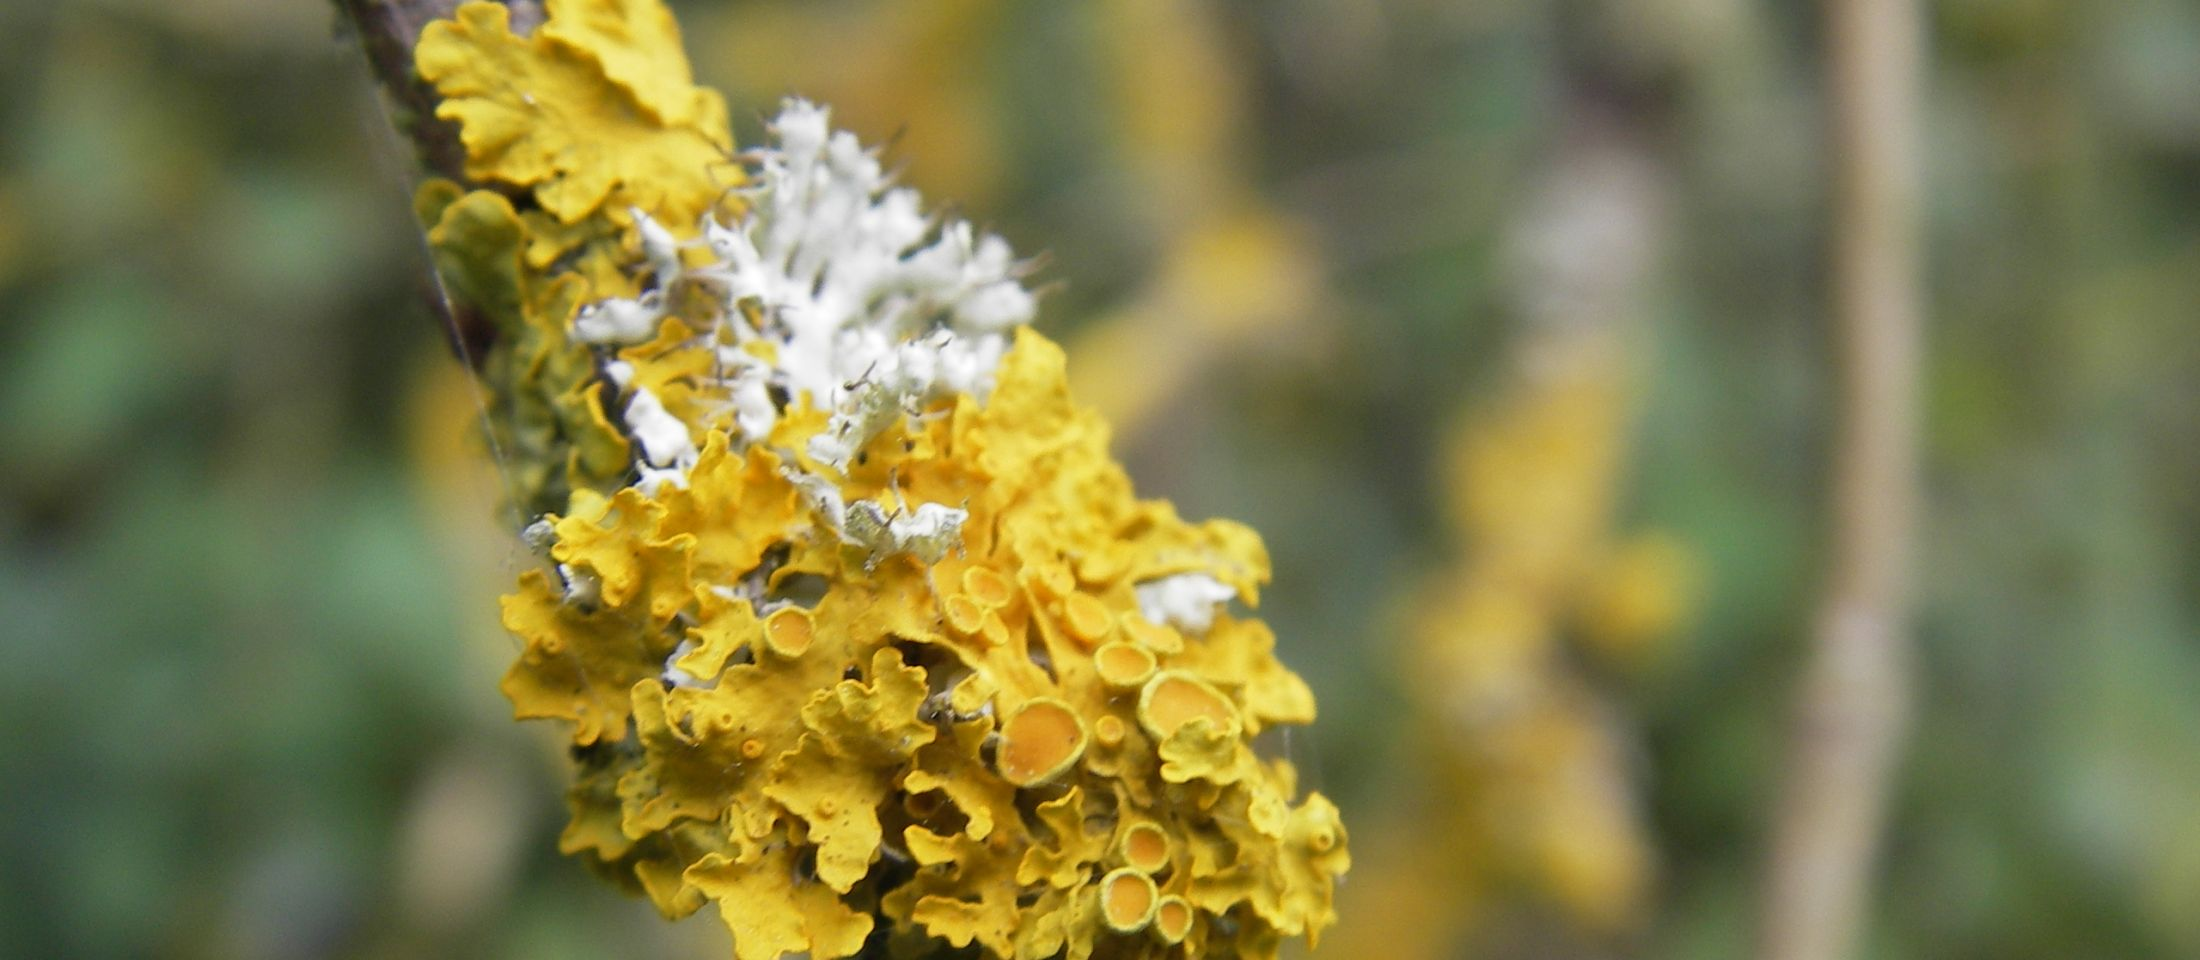 Xanthoria and physica. Photo: Medway Valley